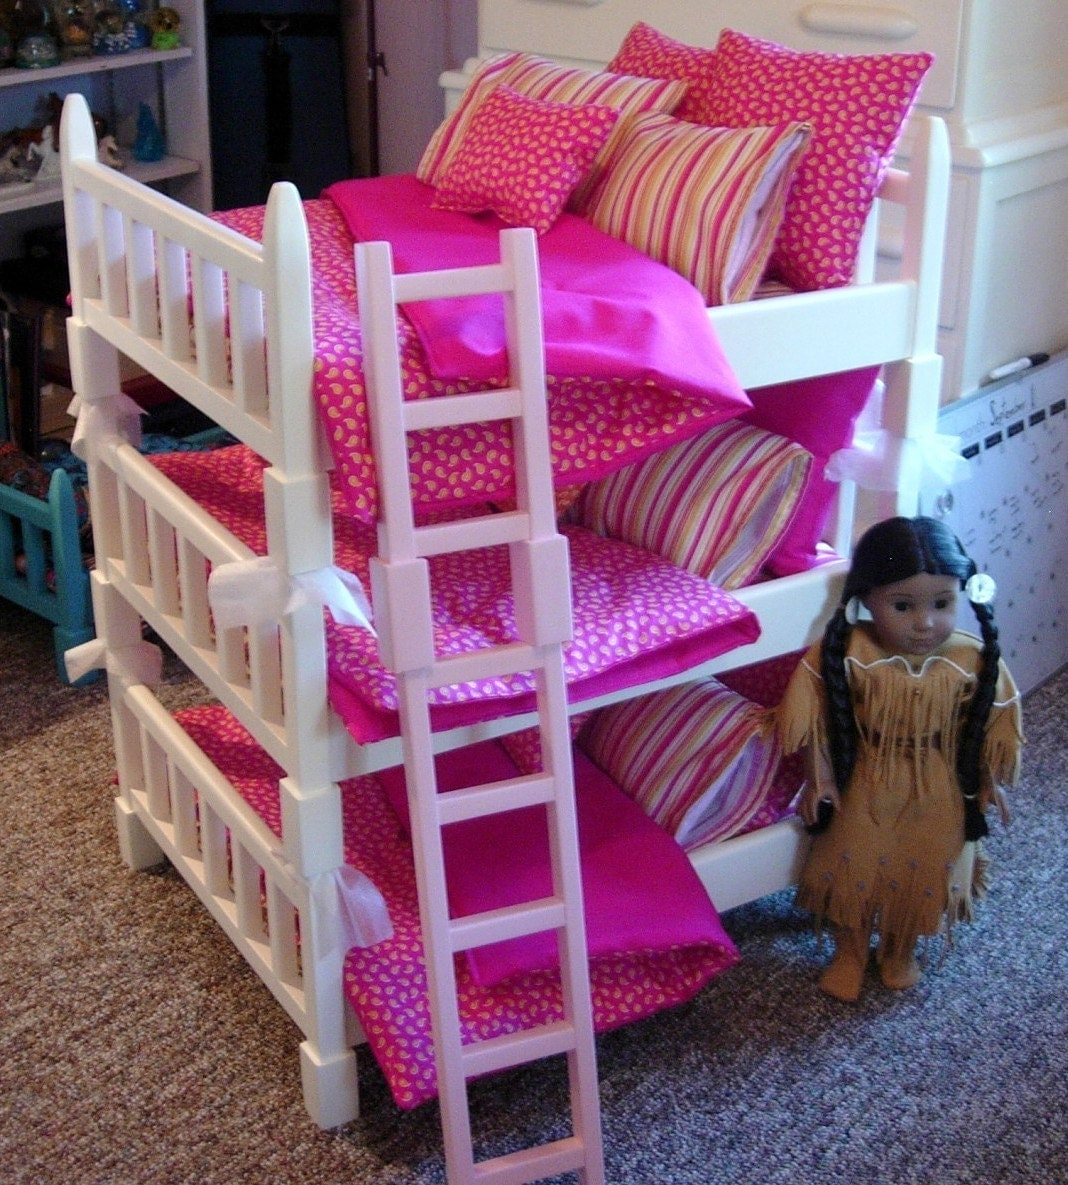 Bunk Bed Dolls: Unavailable Listing On Etsy